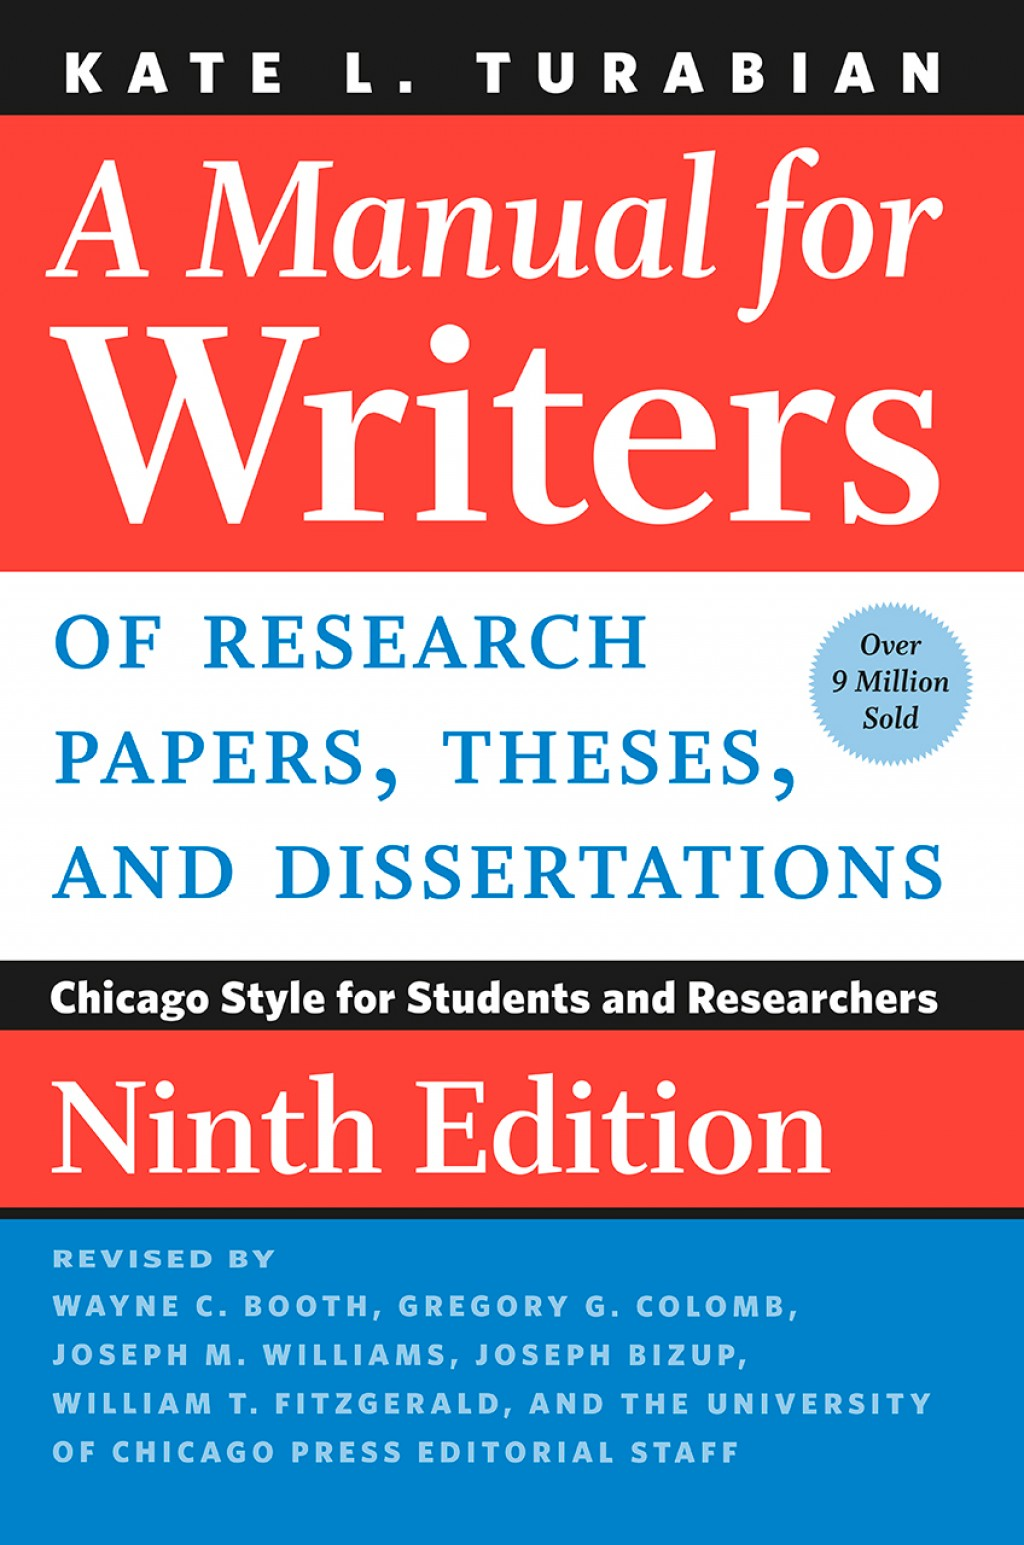 001 Manual For Writers Of Researchs Theses And Dissertations 8th Pdf Top A Research Papers Edition Large